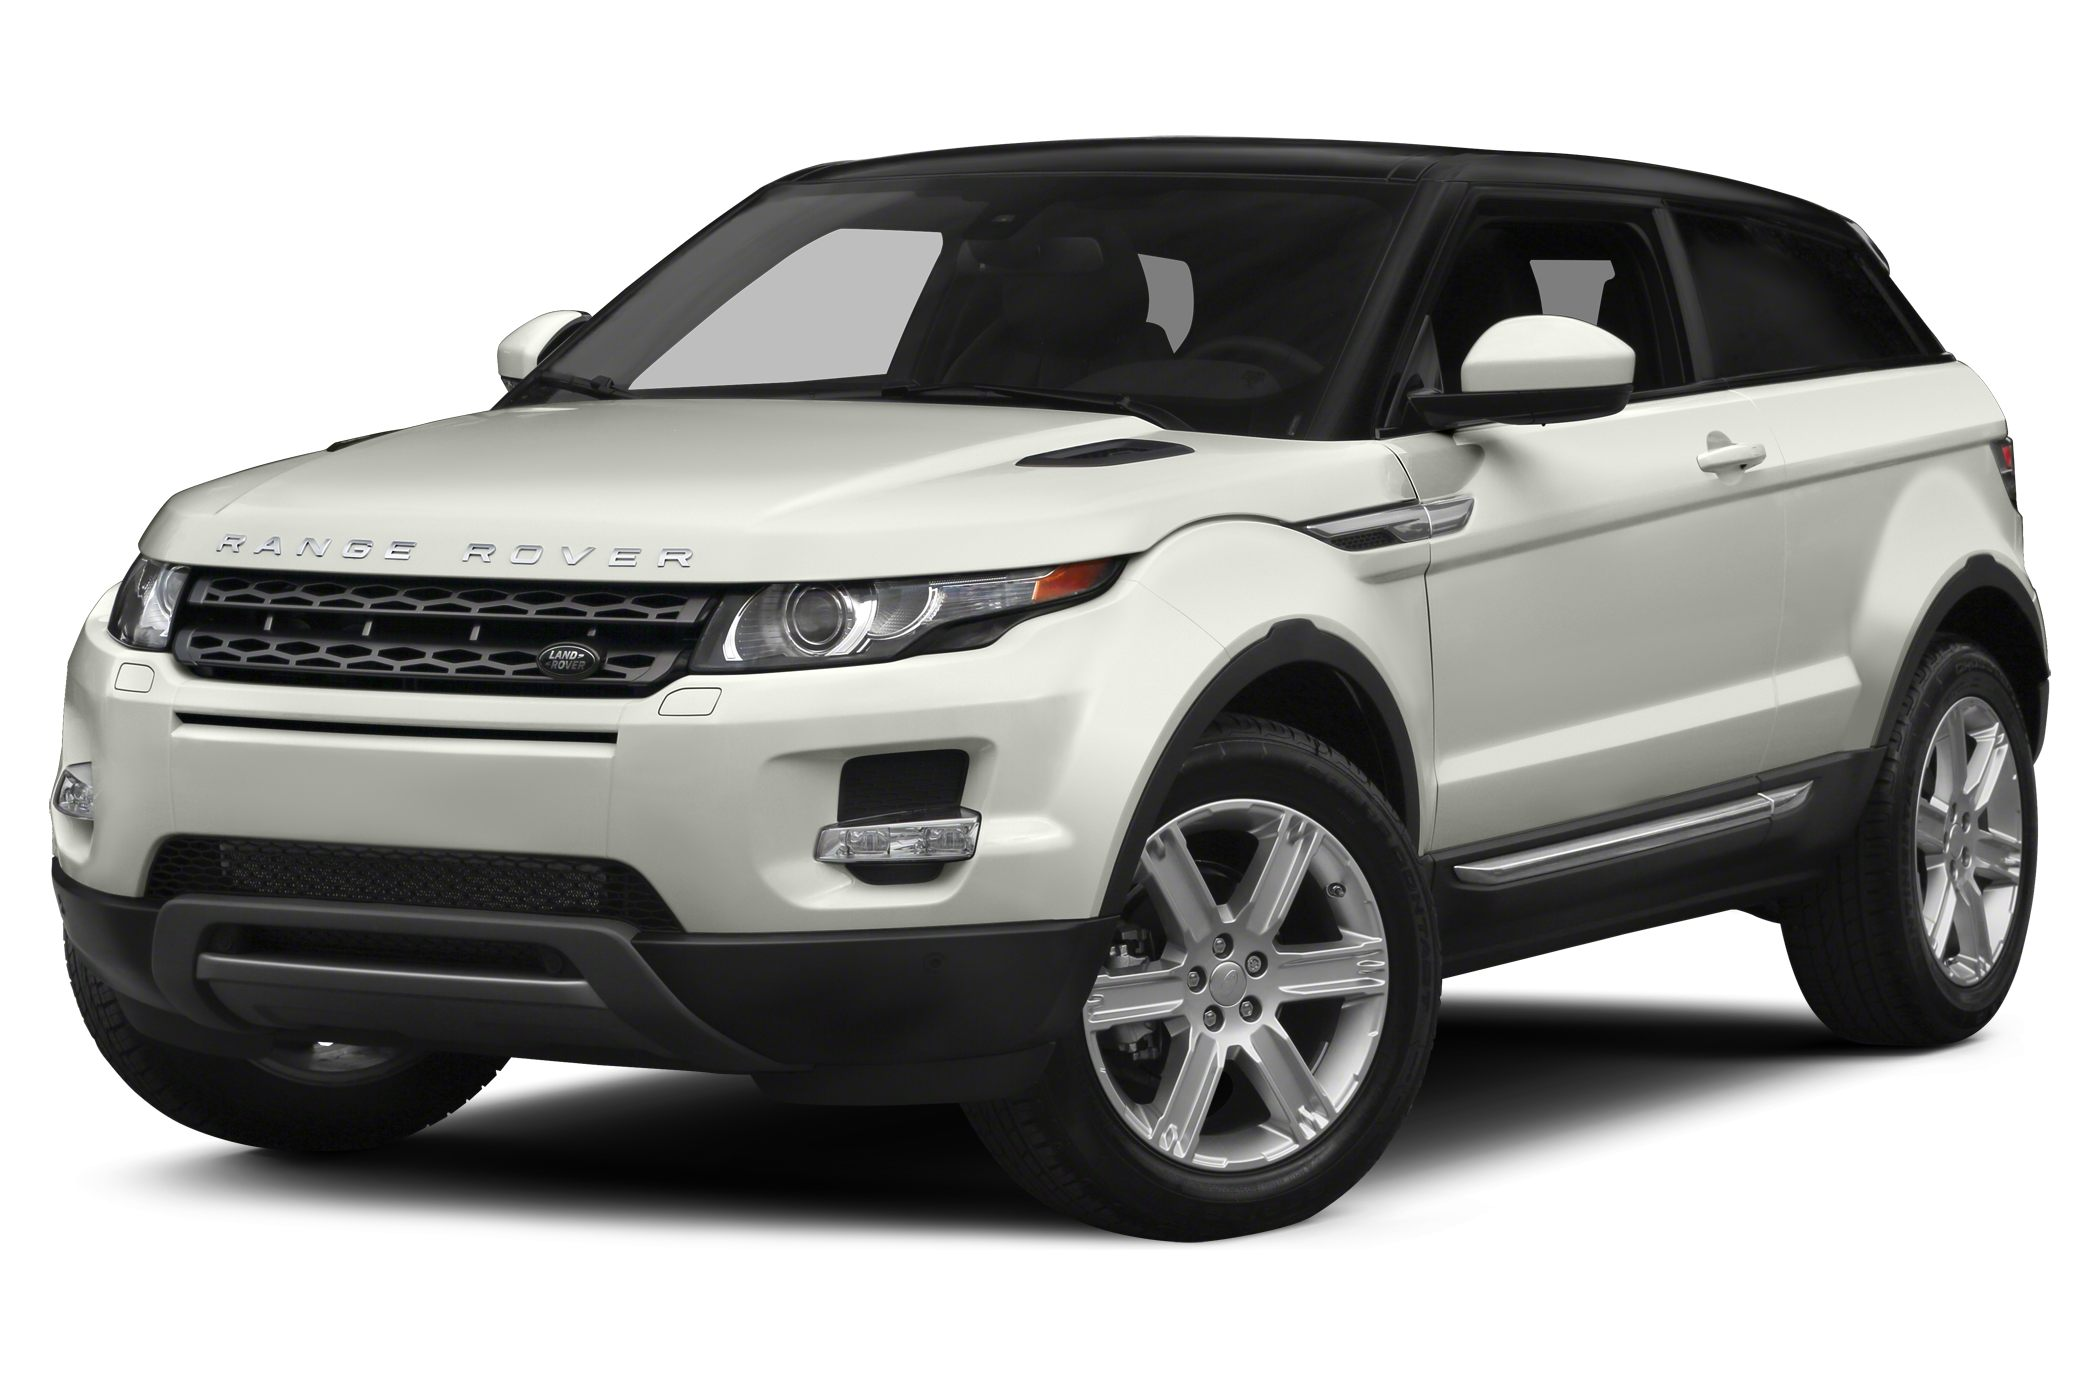 Land Rover Range Rover Car Reviews & Ratings